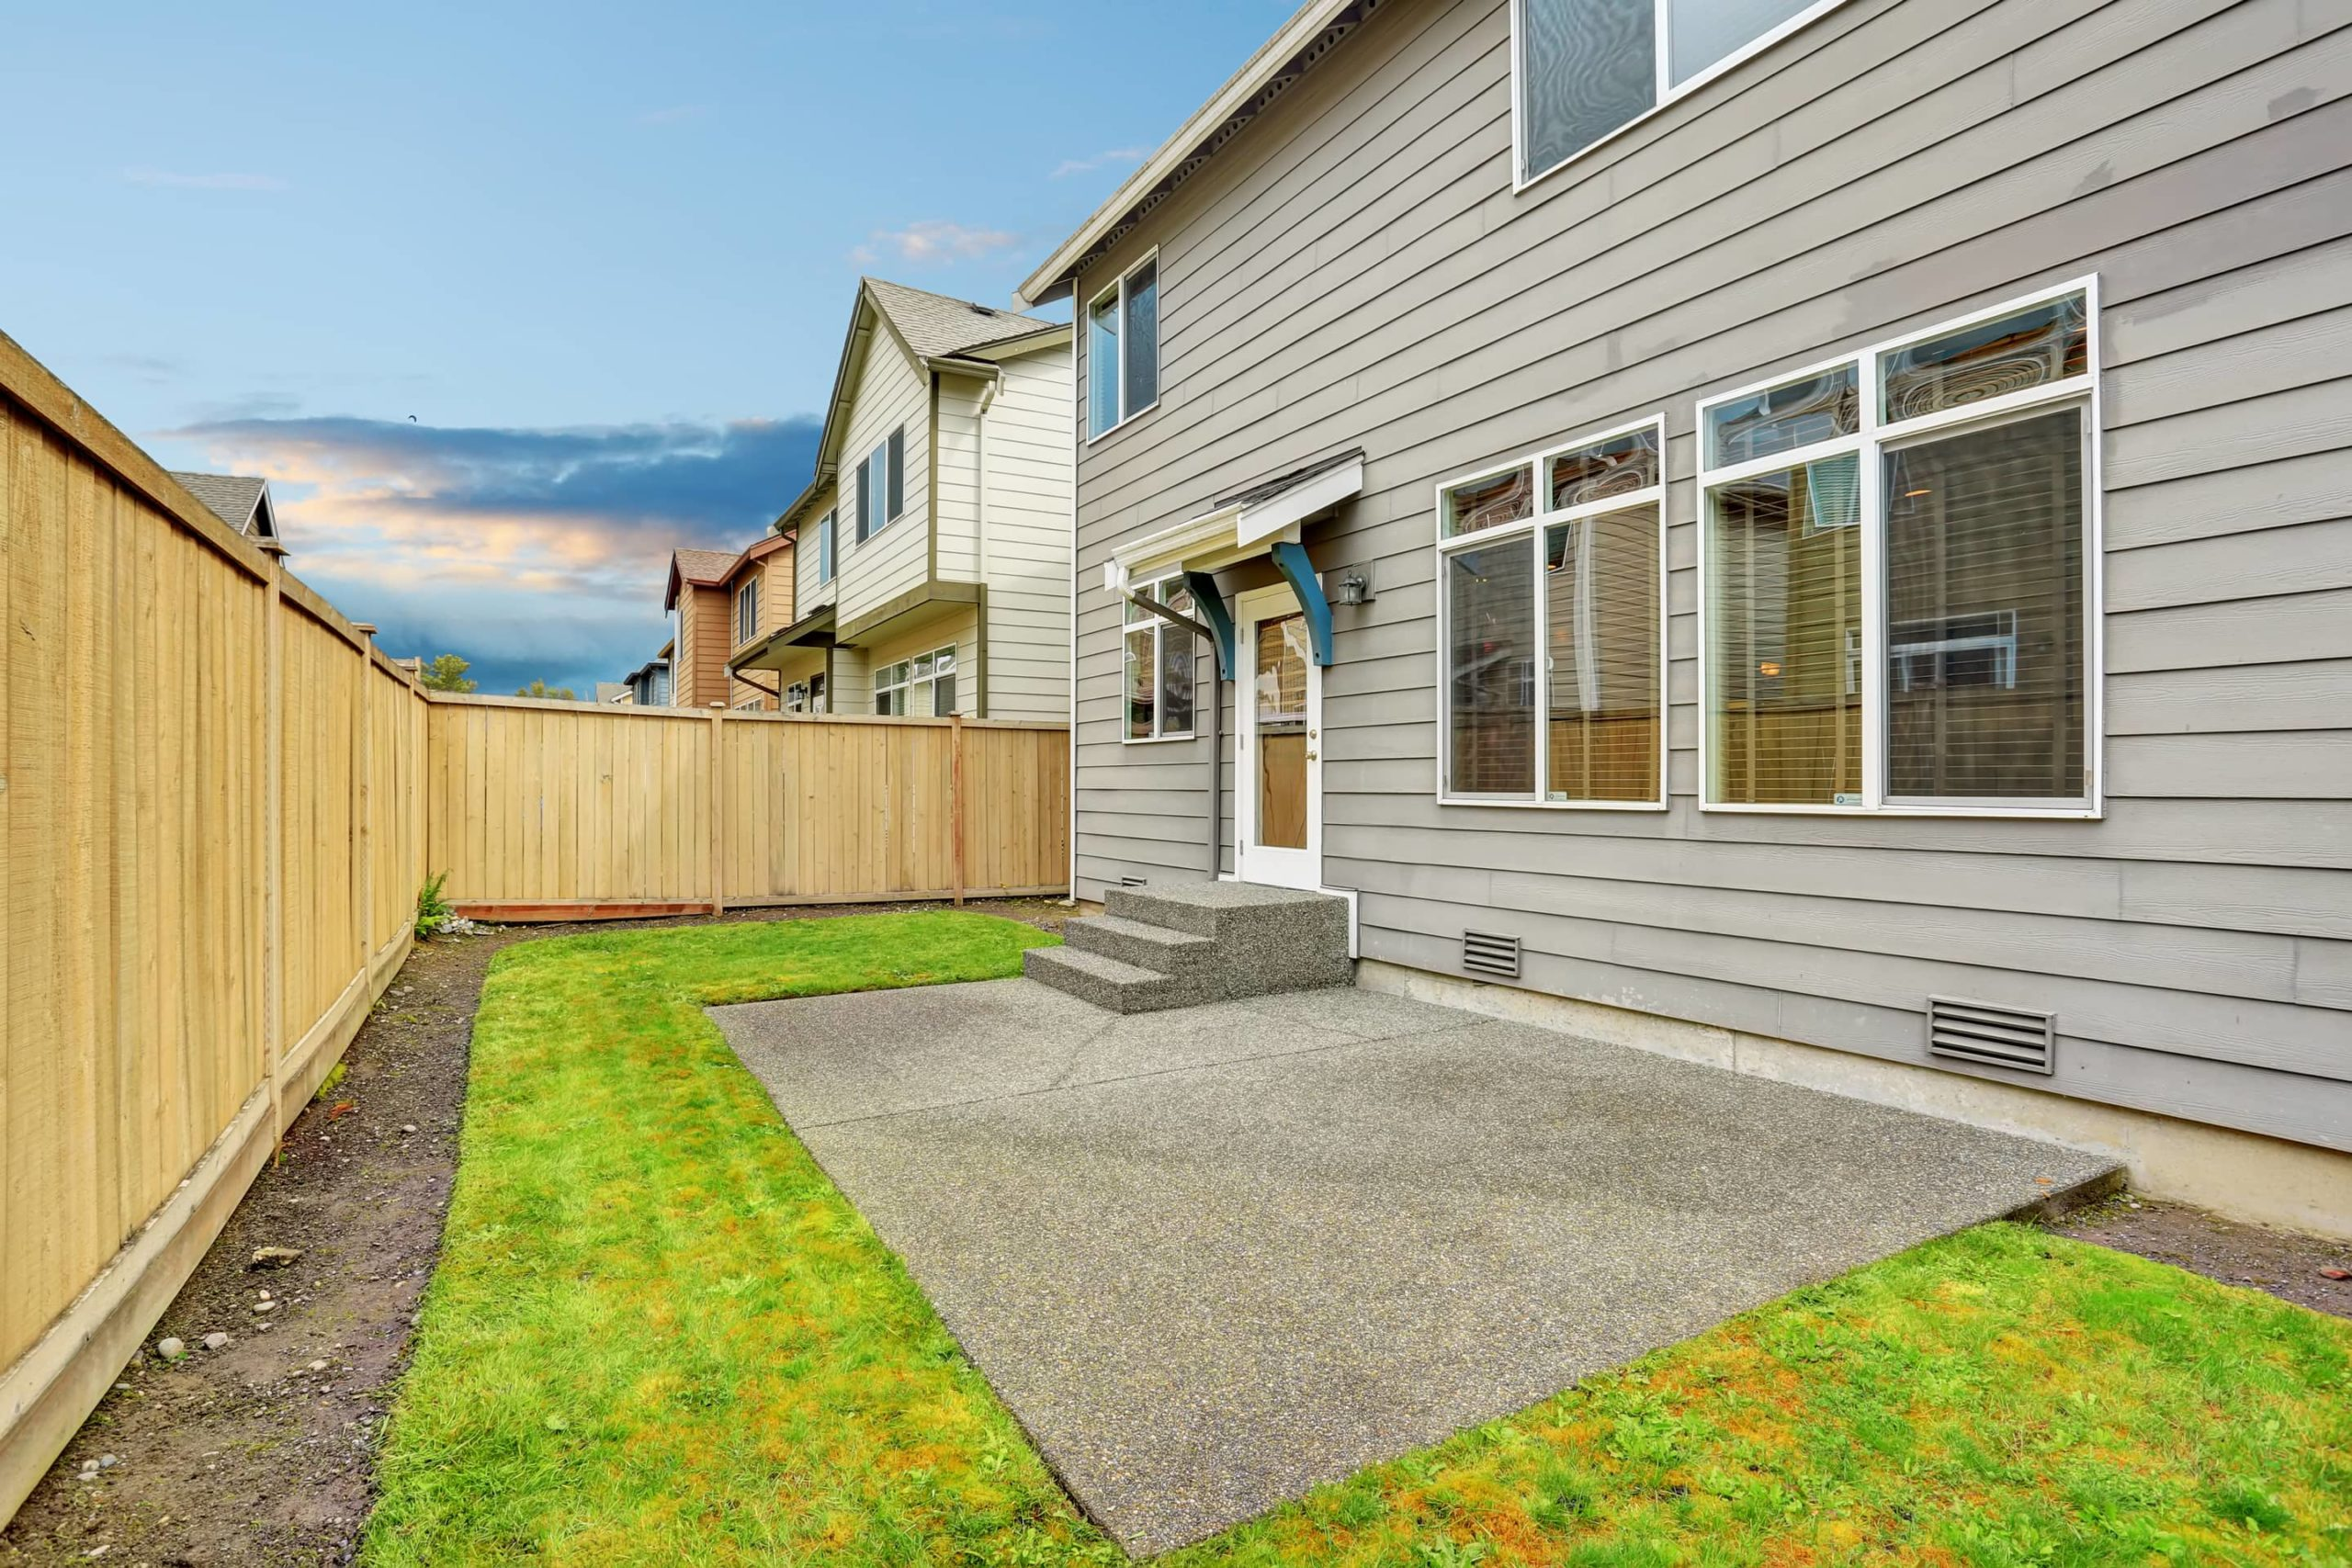 This is an image of a simple rectangular backyard concrete patio.